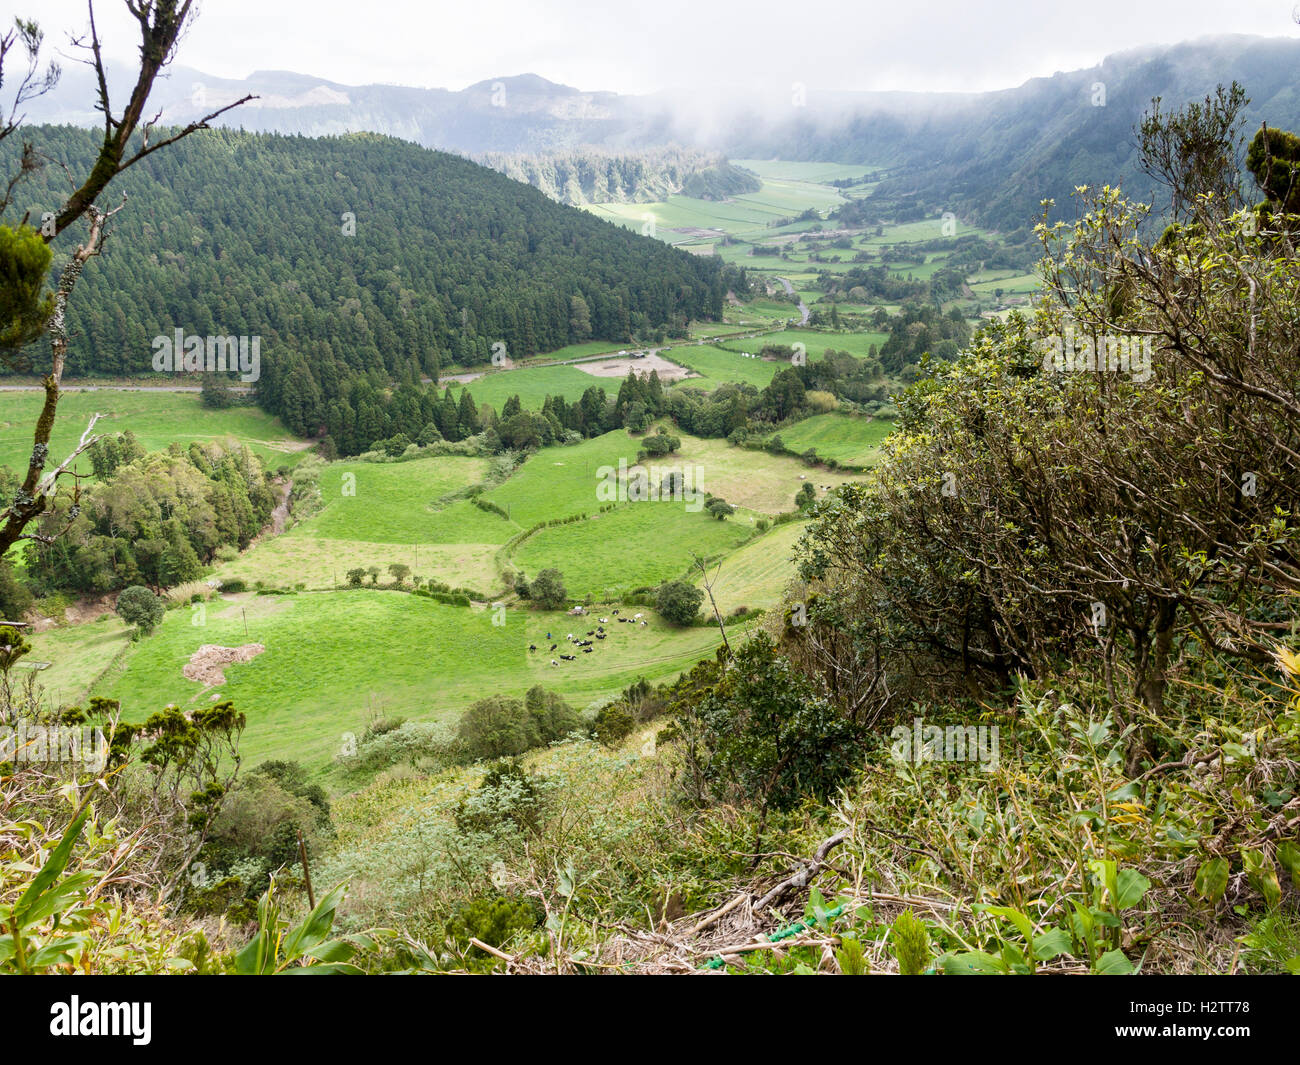 Hidden Valley. Between craters is a hidden agricultural valley, a patchwork of pastures and forests on the caldera - Stock Image